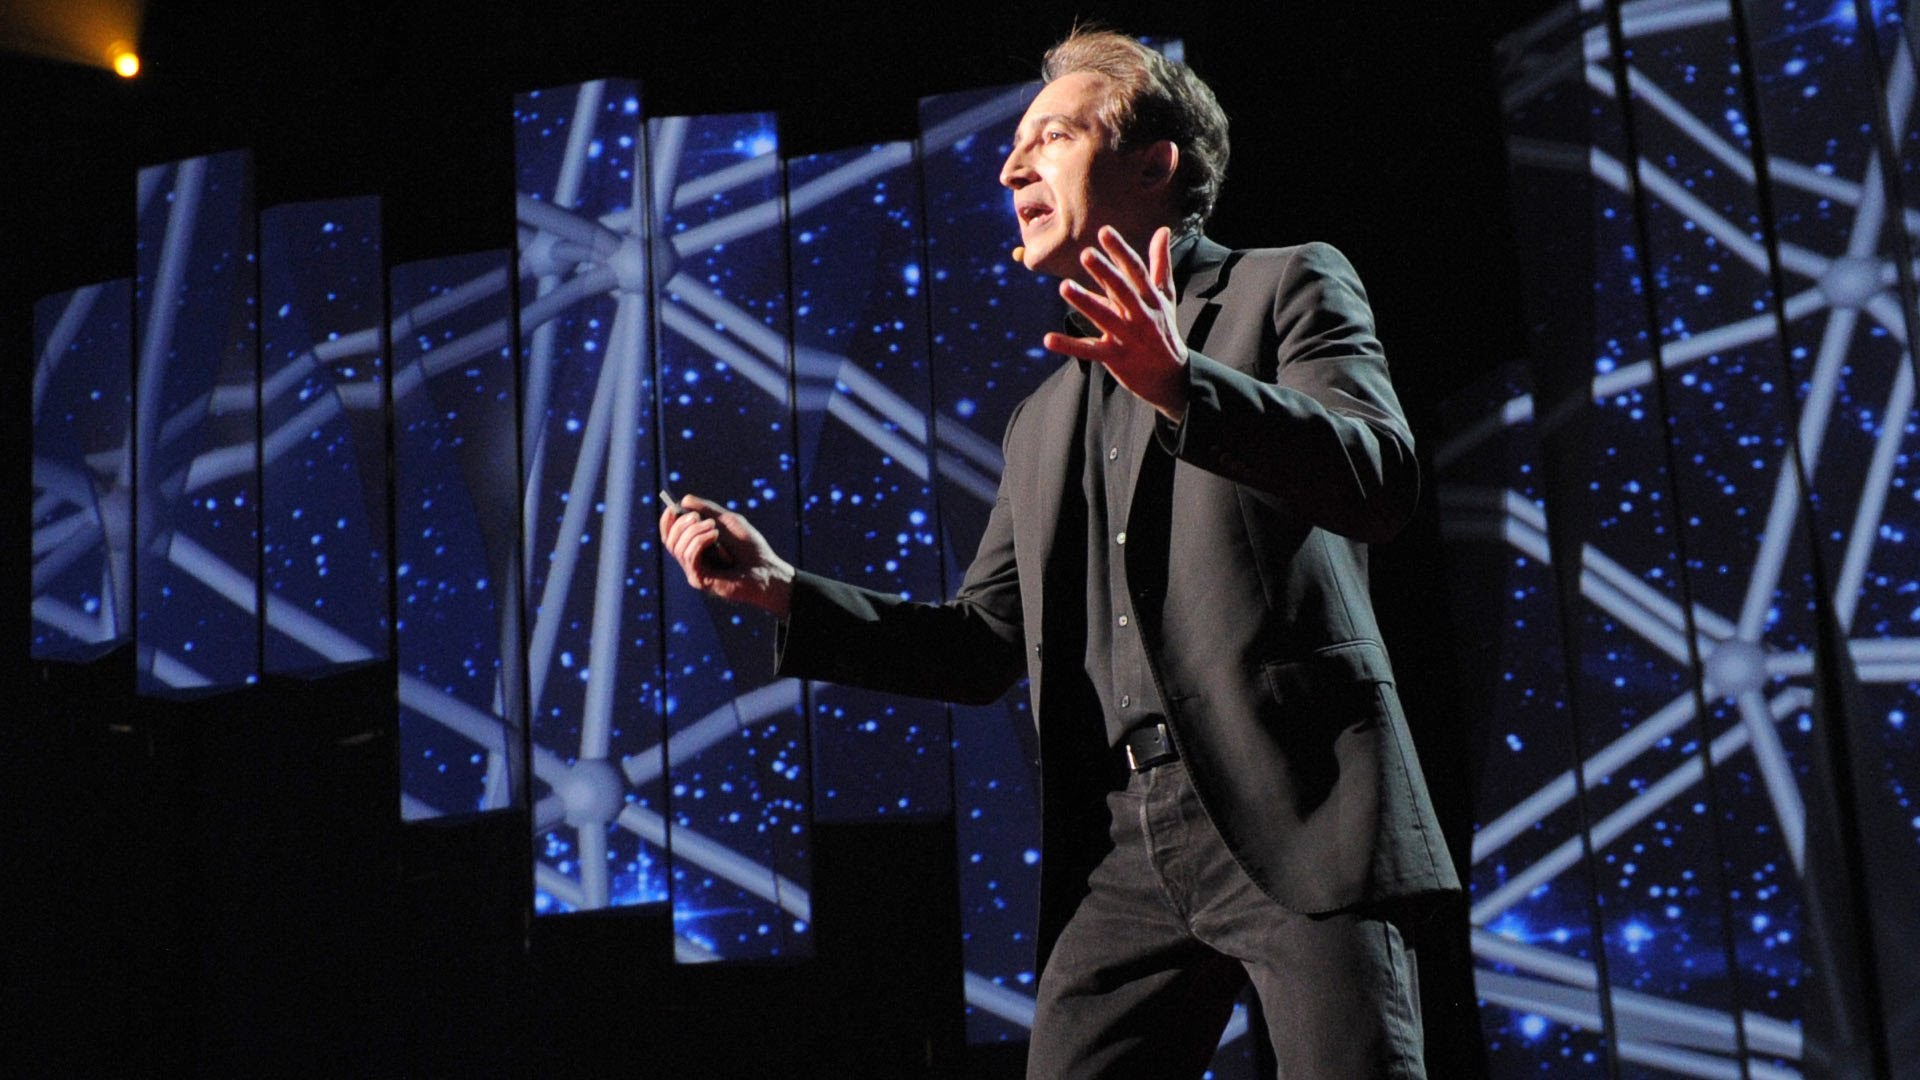 「Brian Greene:我們的宇宙是唯一的宇宙嗎?」- Is Our Universe the Only Universe?